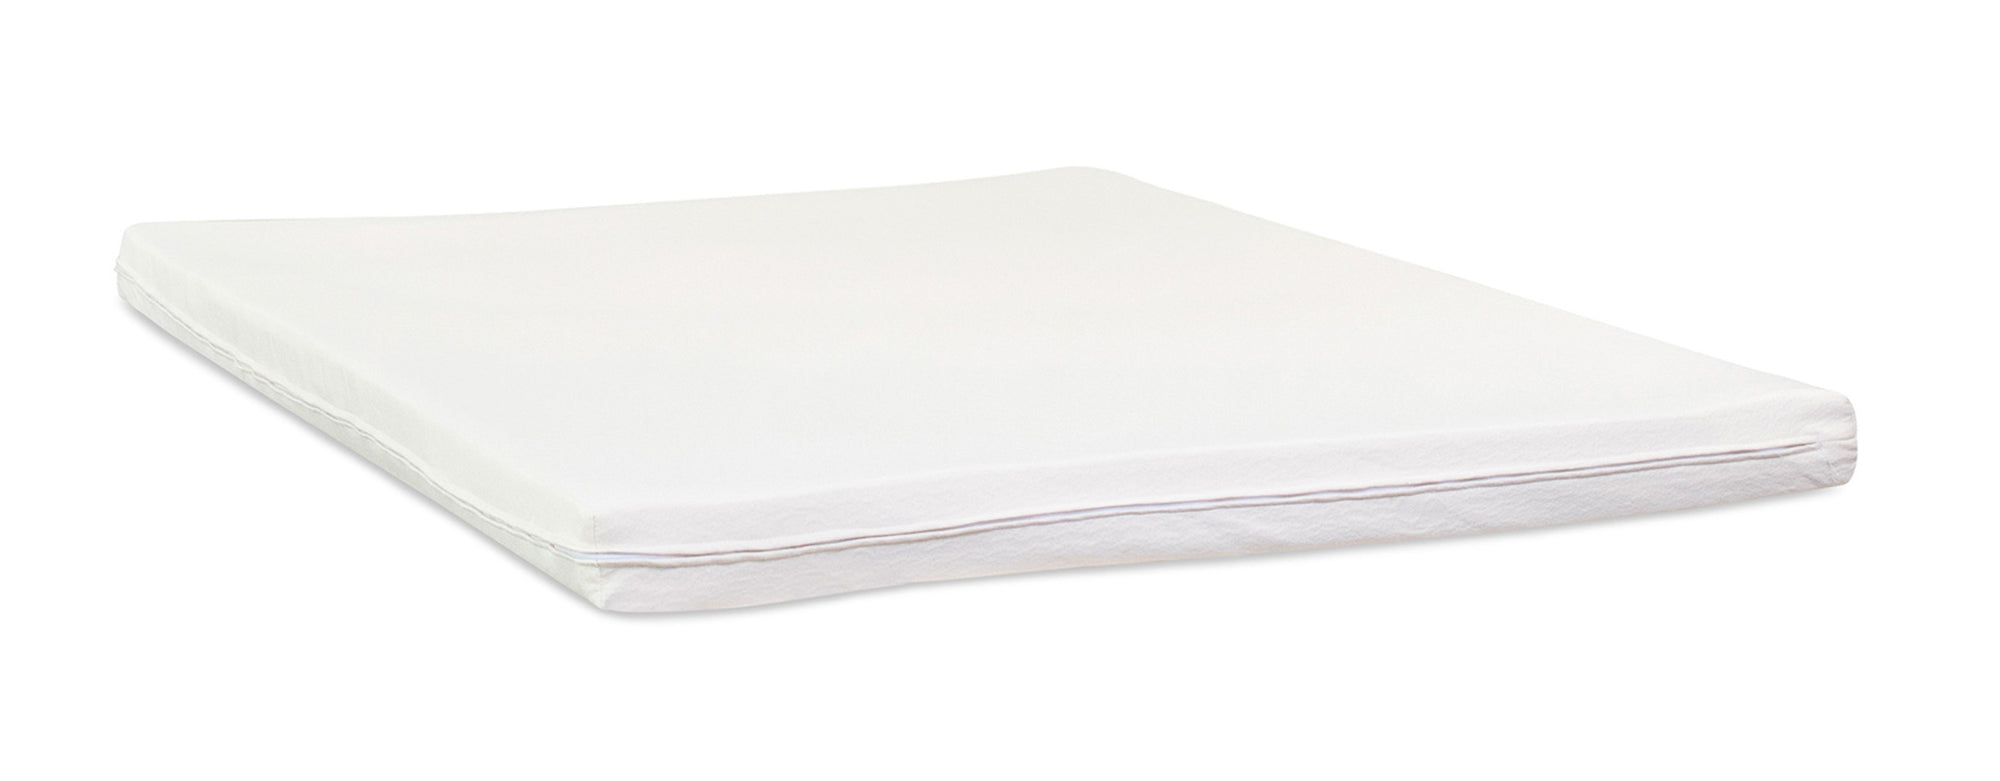 "4"" Organic Latex Mattress Topper"